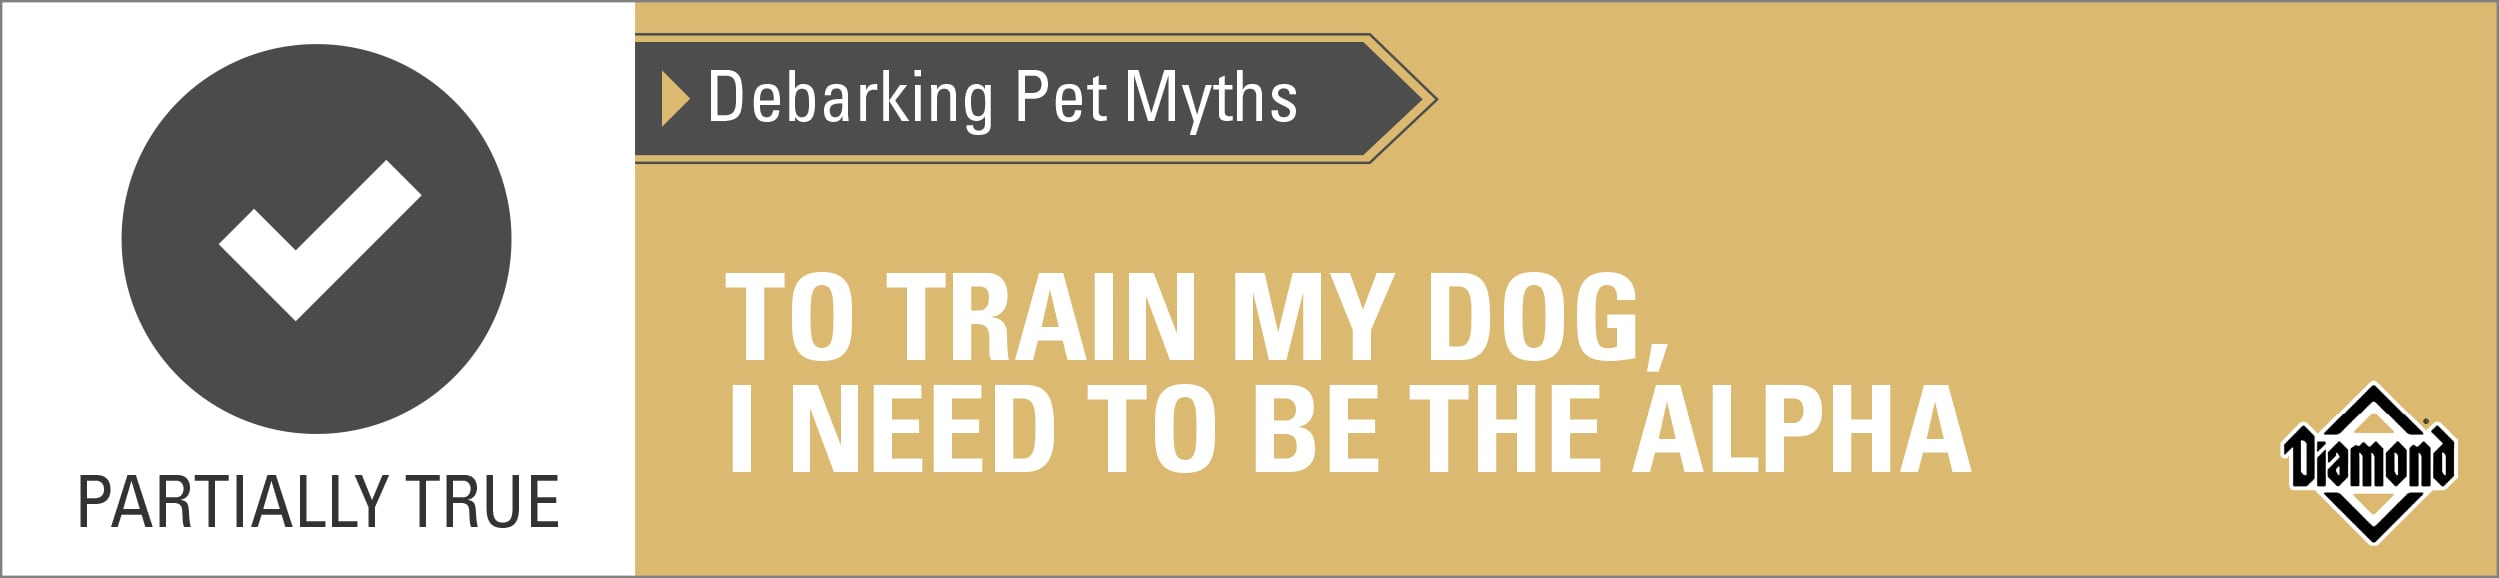 Partially True: To Train My Dog, I Need to Be the Alpha | Diamond Pet Foods